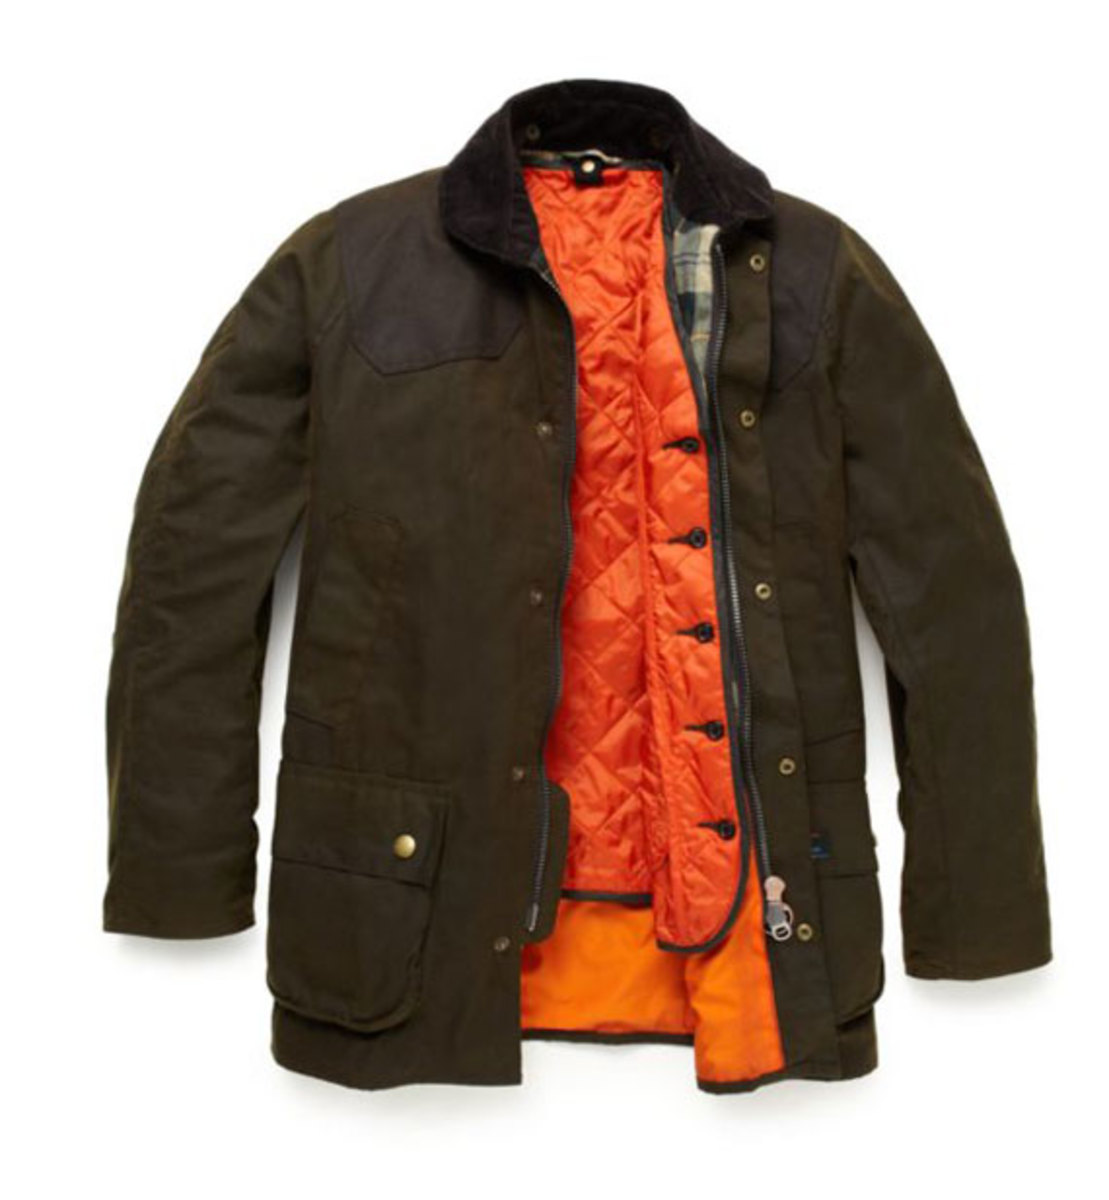 jack-spade-x-barbour-fall-winter-2012-capsule-collection-05